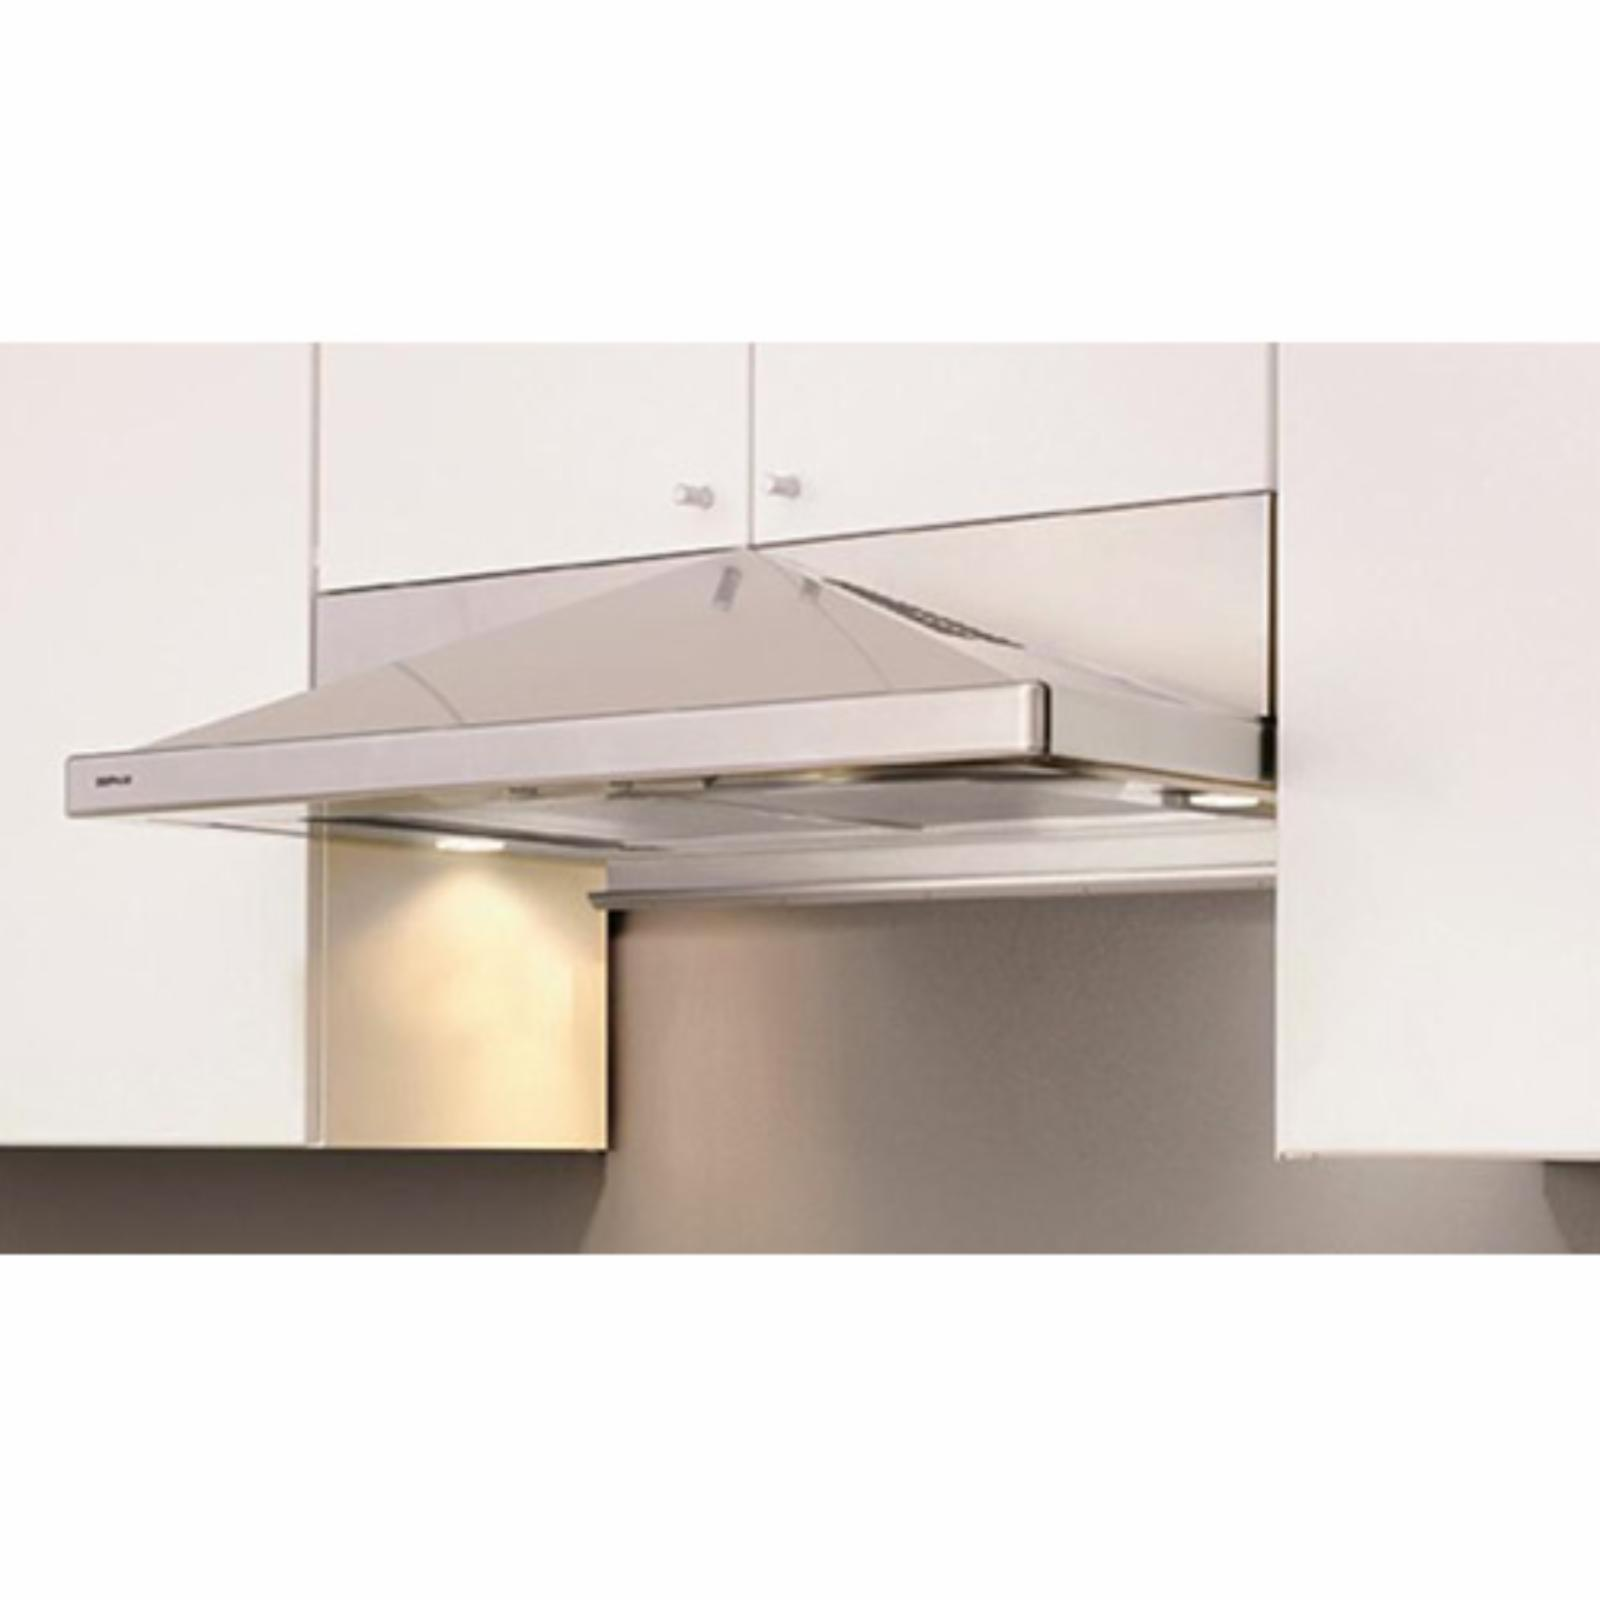 Zephyr 30W in. Pyramid Under Cabinet Range Hood Stainless...